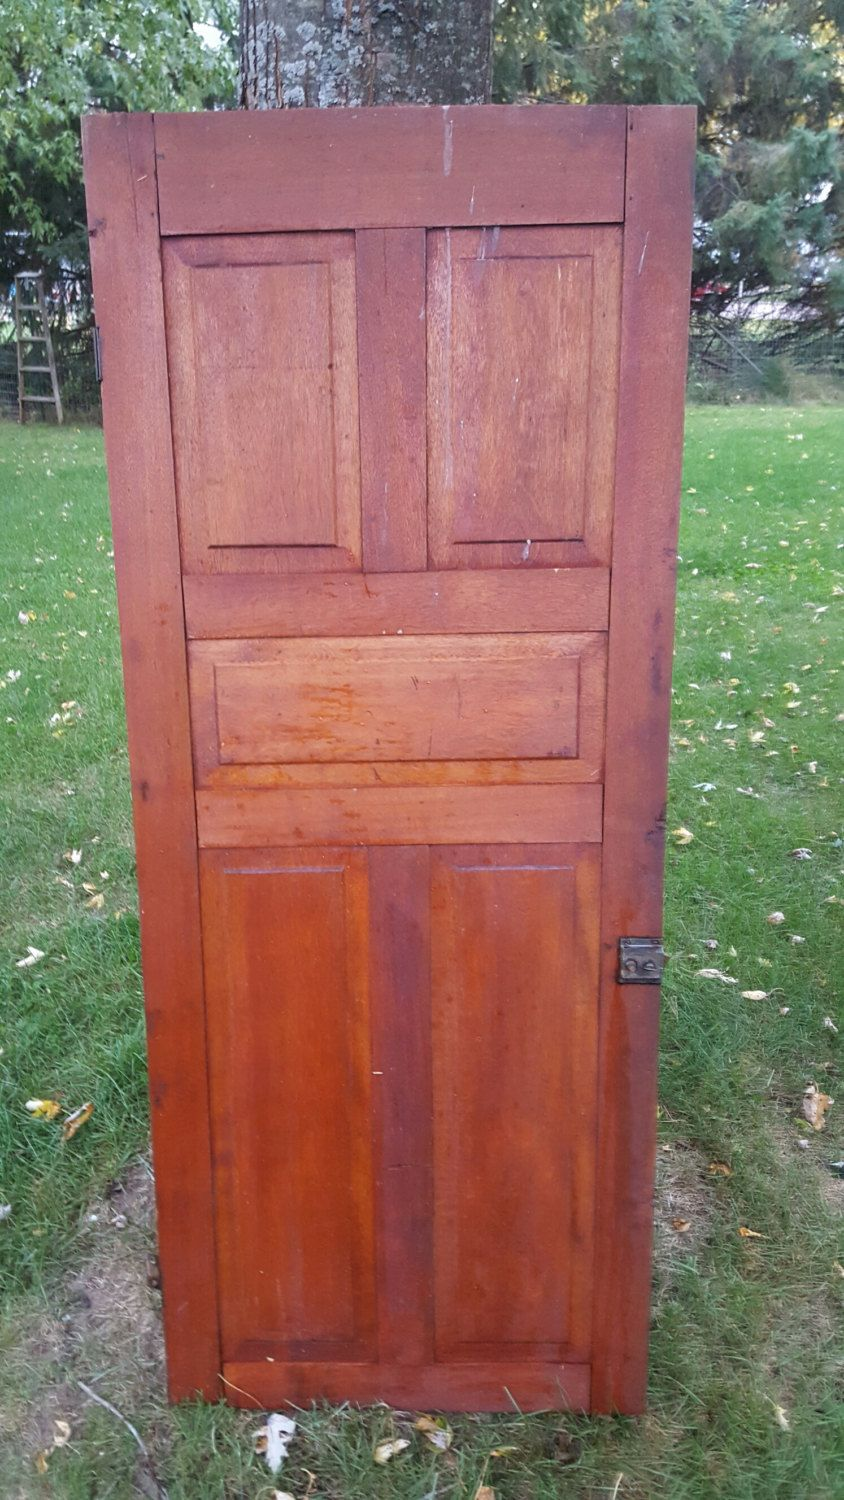 Old Wood Door Antique Cupboard Architectural Salvaged 5 Panel Arts Crafts Solid Pantry Diy Project D4 By Antfoundantiques On